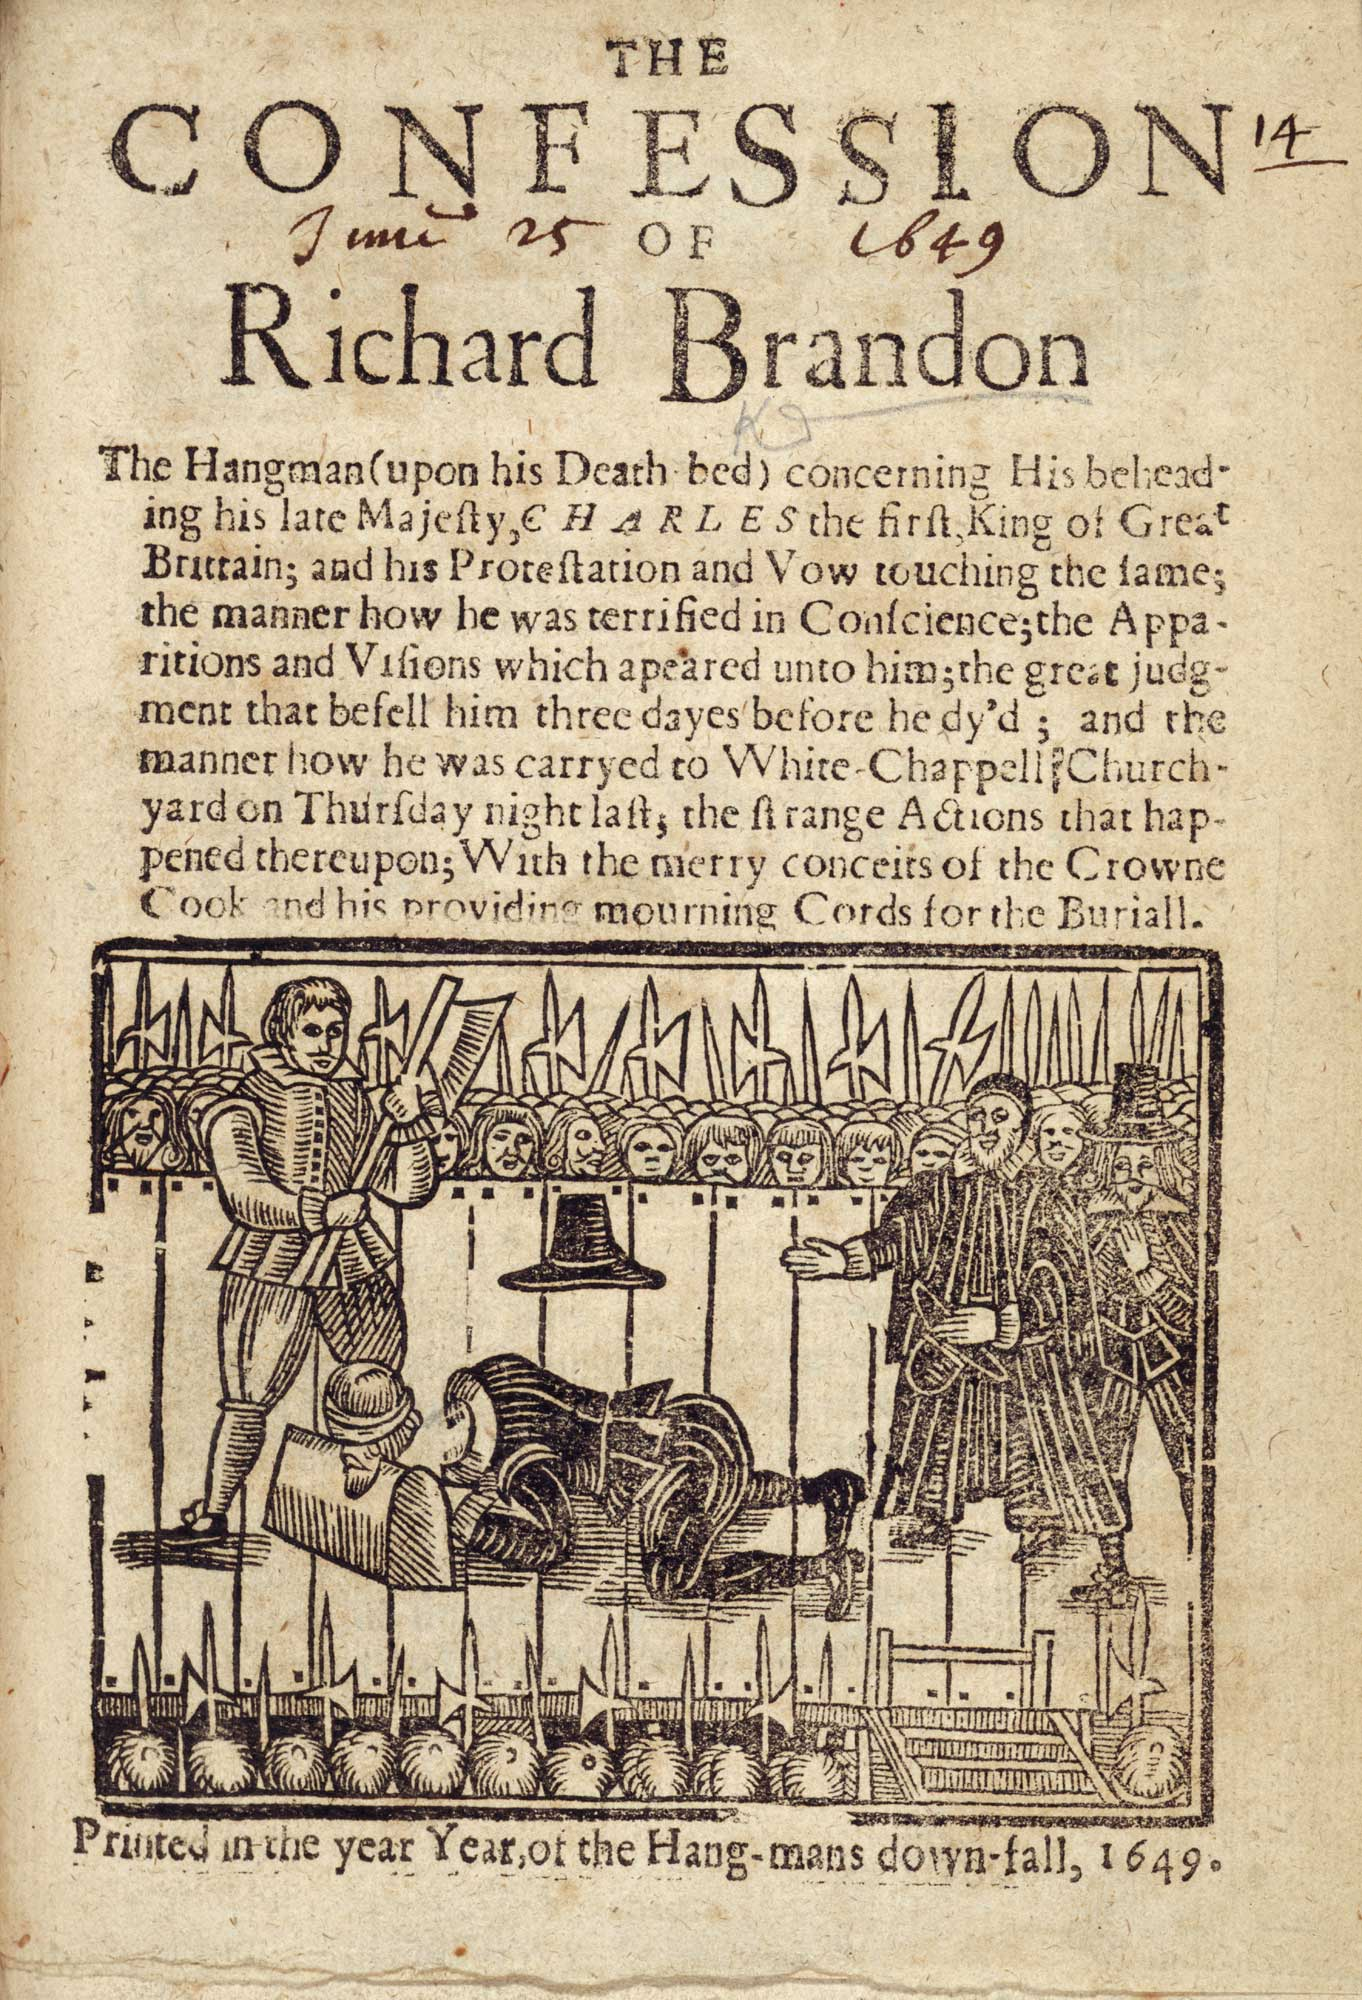 Charles I's executioner